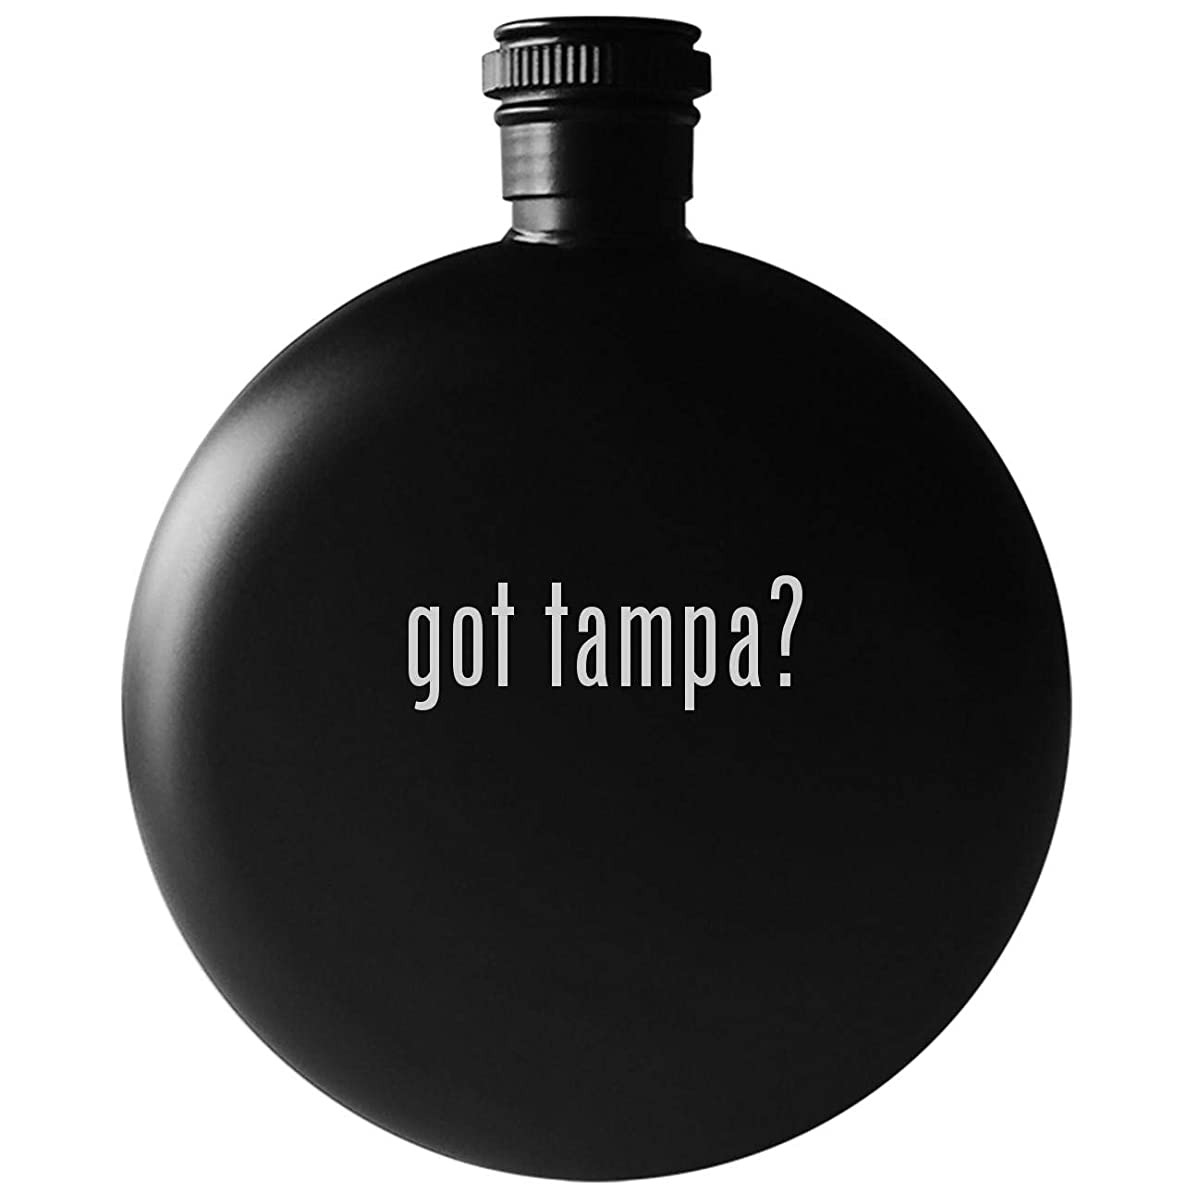 got tampa? - 5oz Round Drinking Alcohol Flask, Matte Black